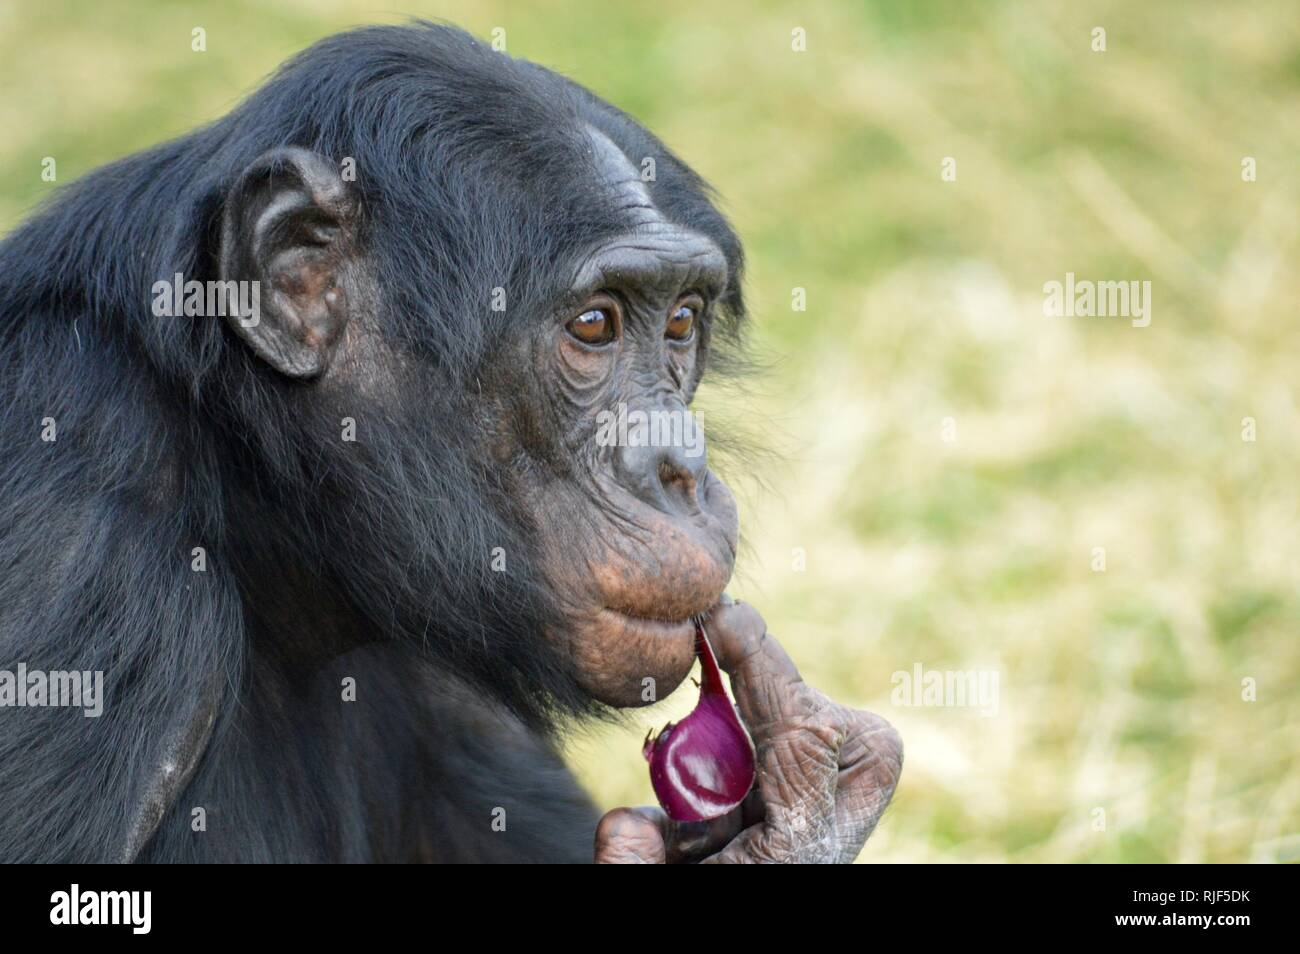 Thoughtful Bonobo - Stock Image